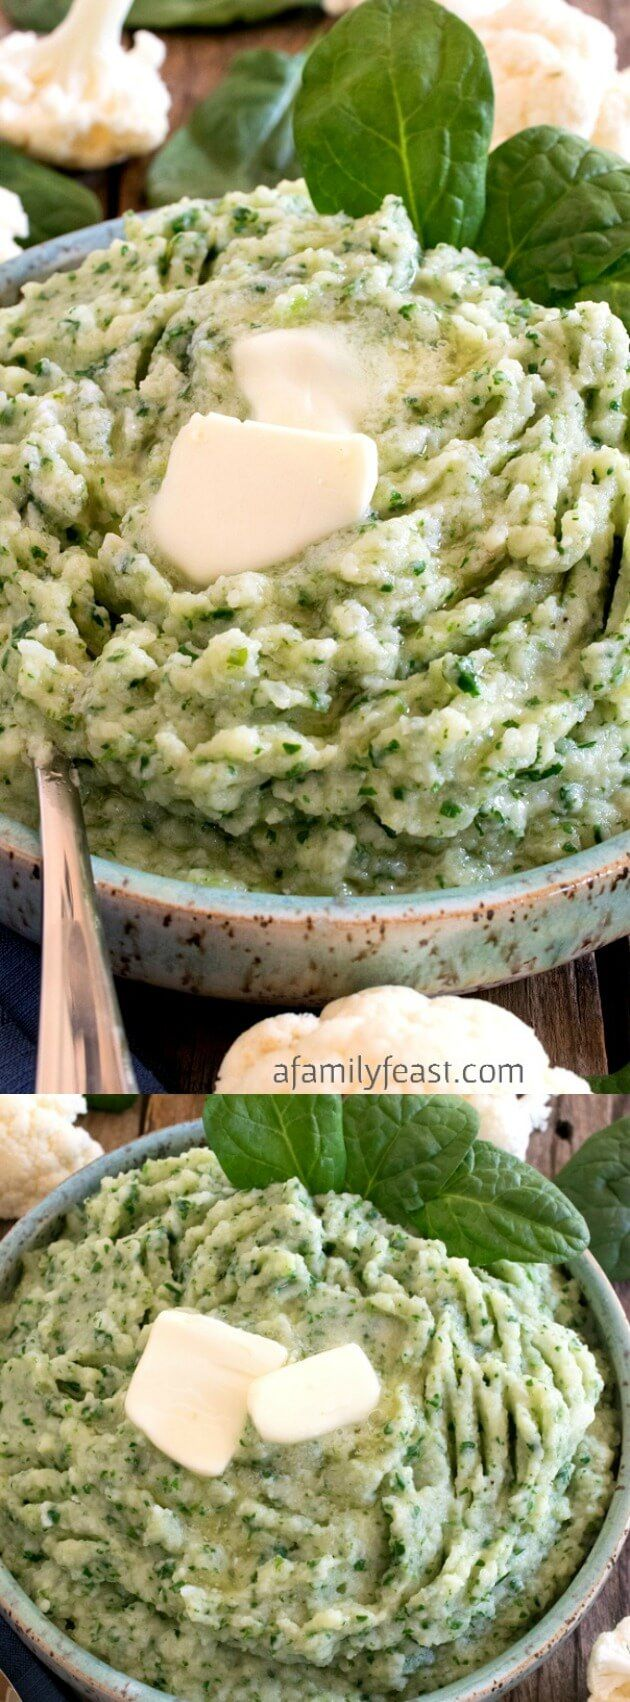 This Mashed Cauliflower and Spinach recipe from A Family Feast is an easy and tasty way to eat your veggies! It's a super flavorful dish with onion, spinach, butter, and seasoning!